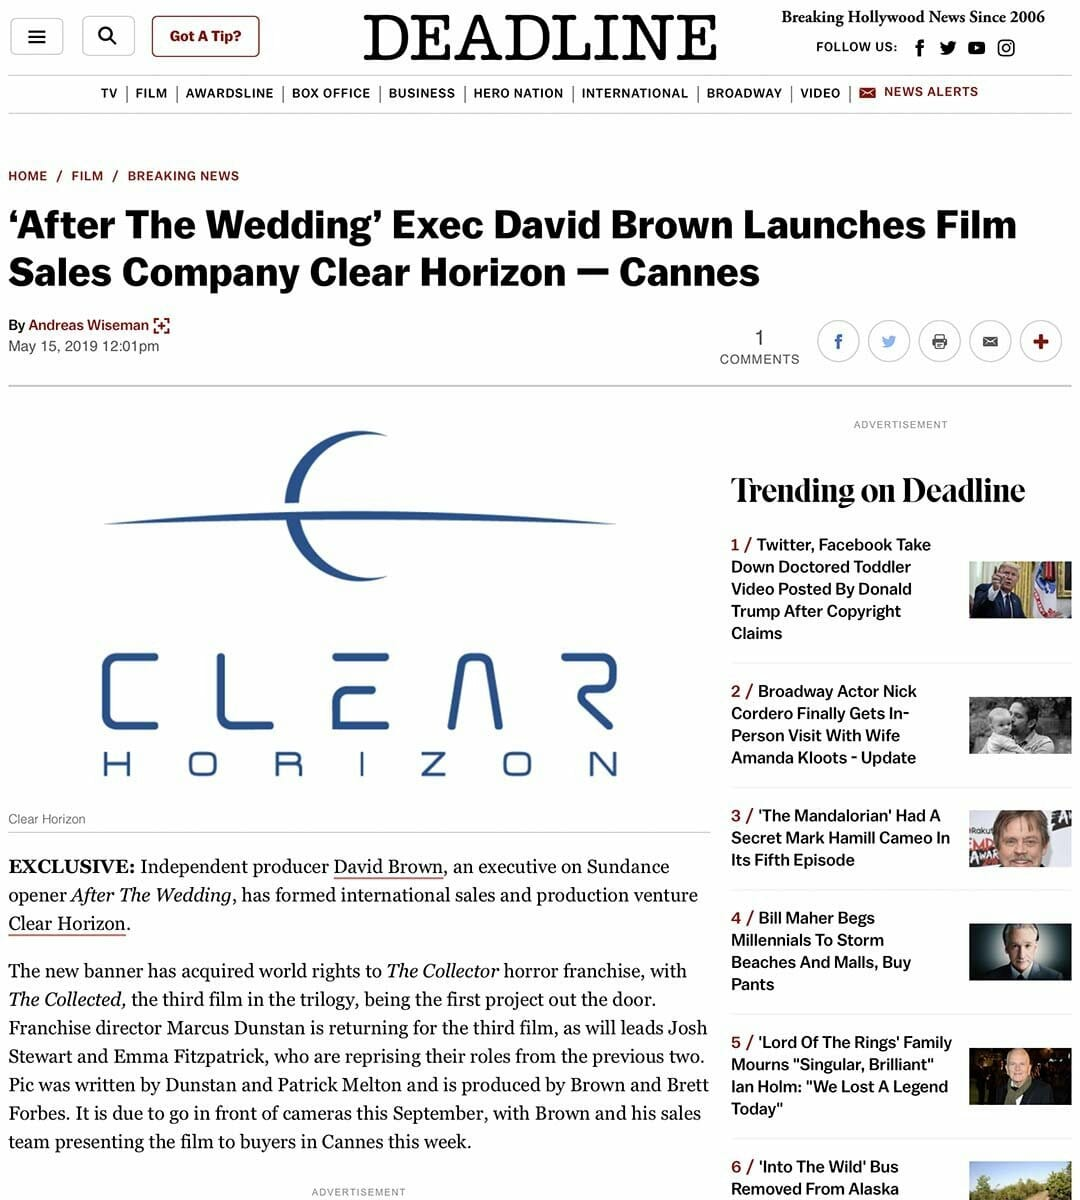 DEADLINE: 'After The Wedding' Exec David Brown Launches Film Sales Company Clear Horizon — Cannes